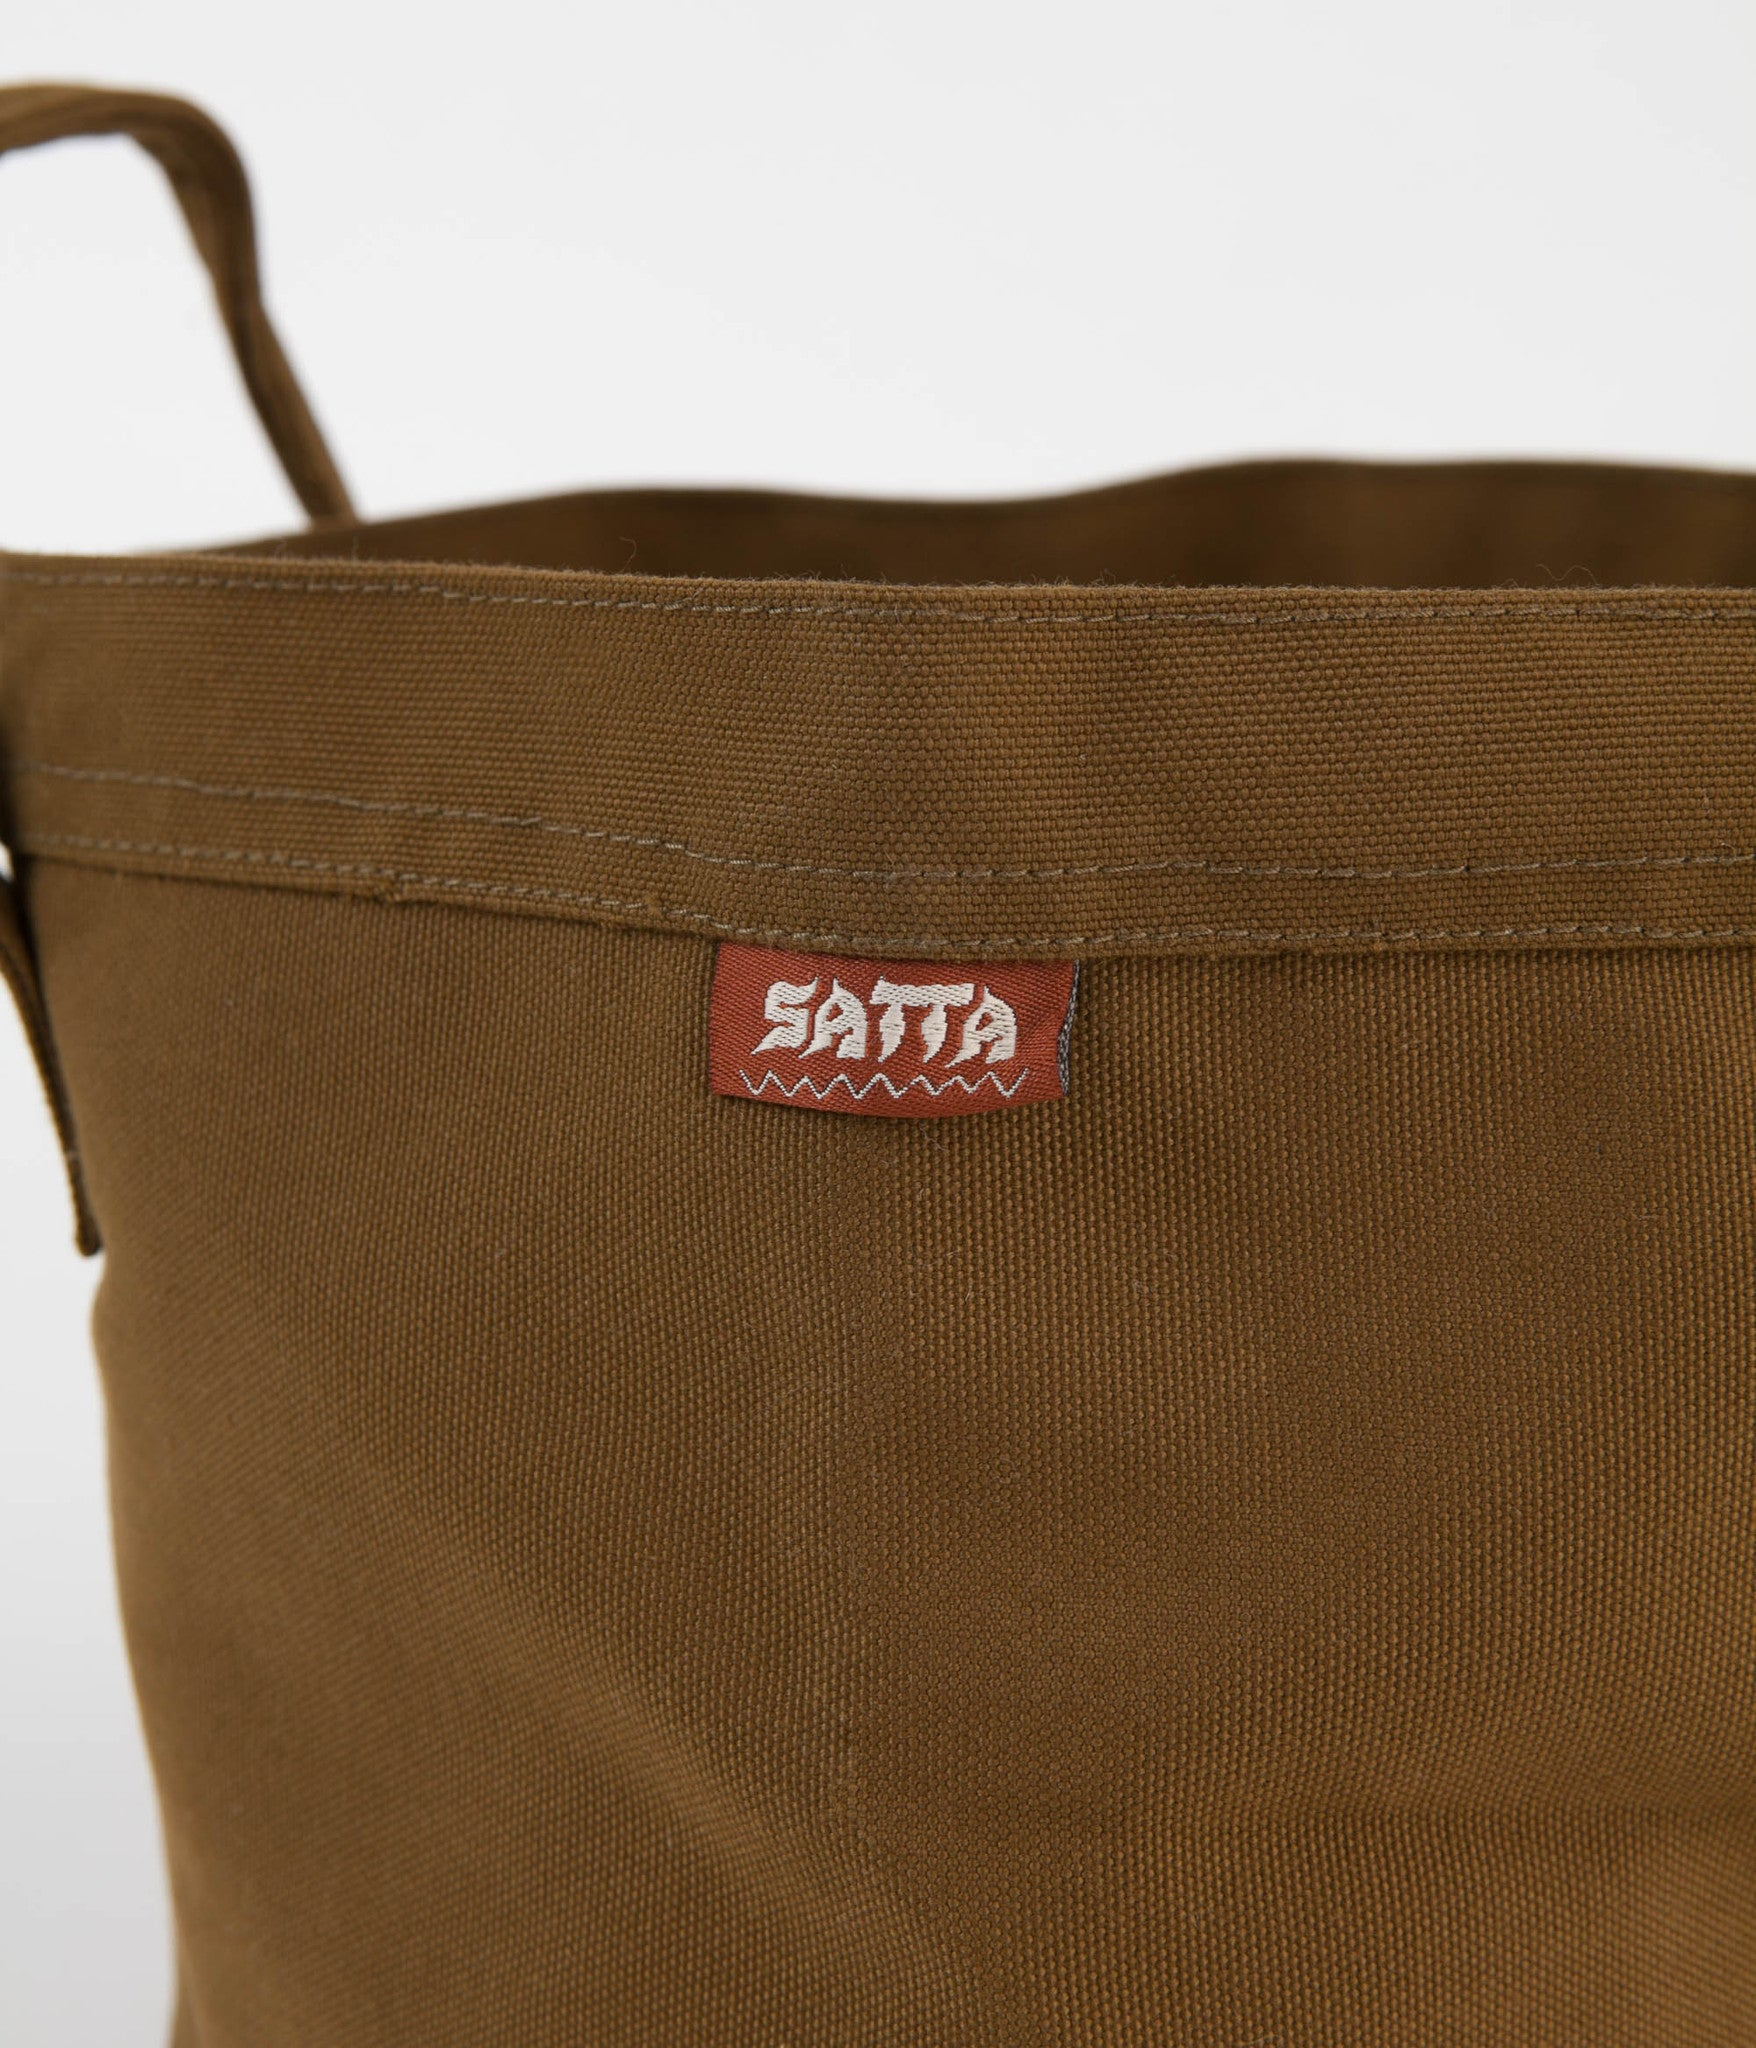 Satta Grow Bag - Pebble Beige